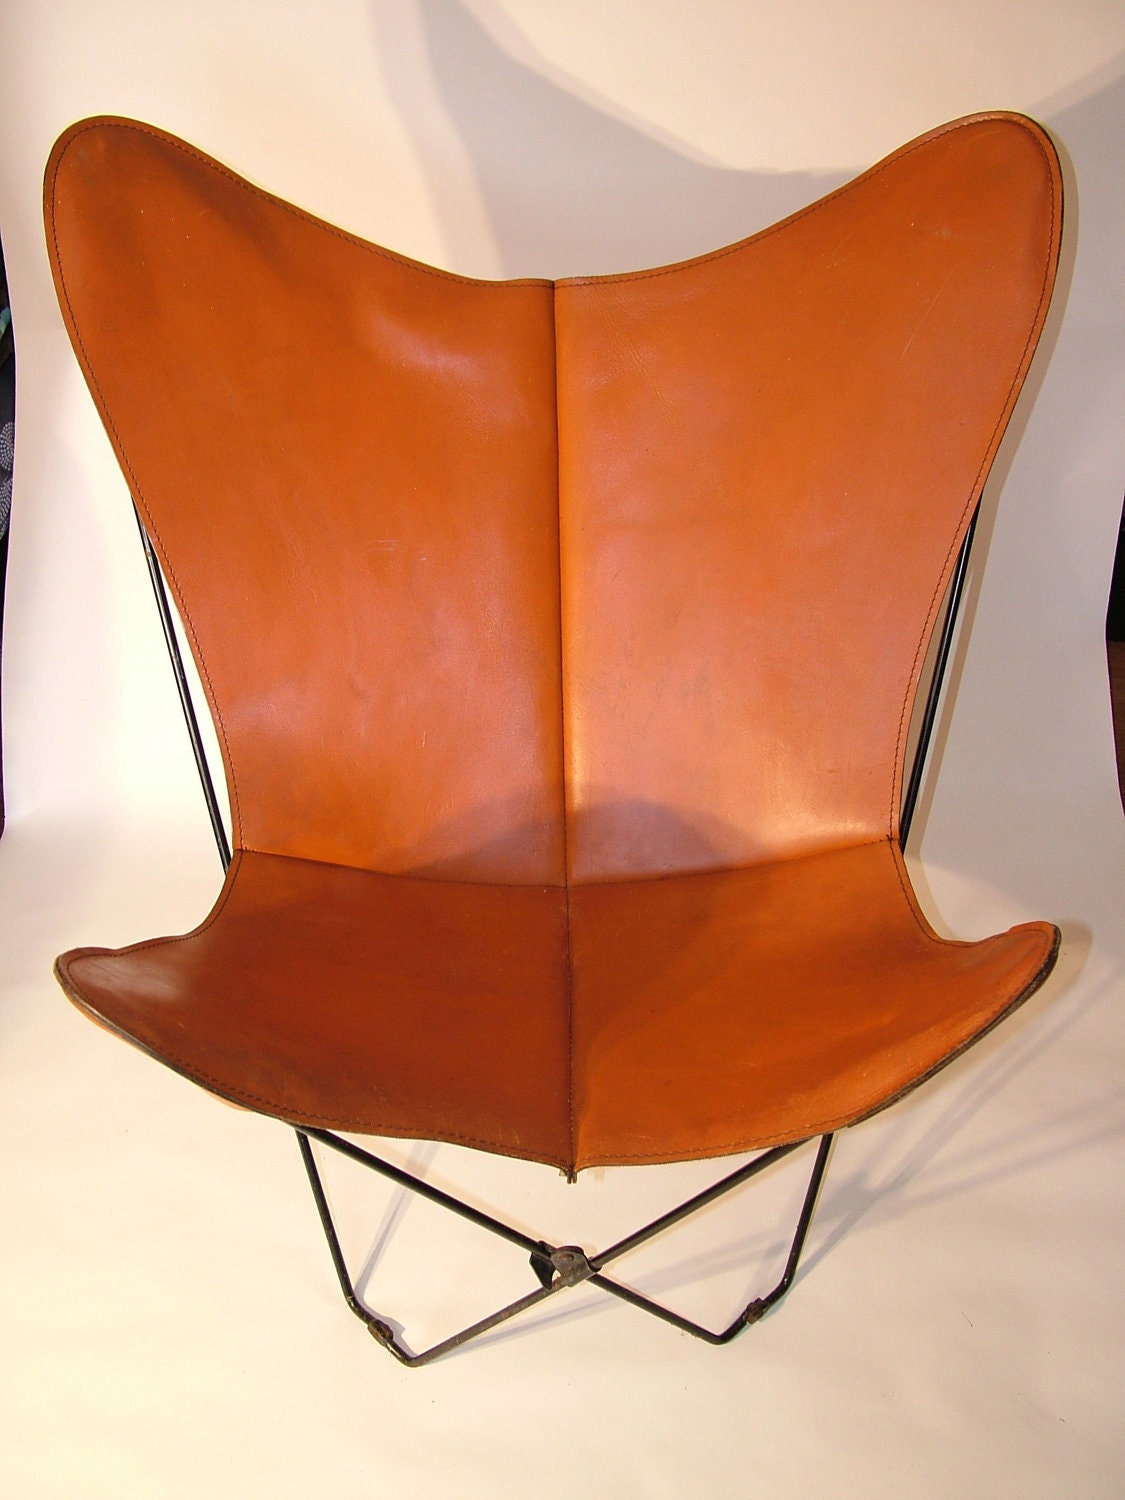 Leather butterfly chair previous next categories butterfly chair - 1960s Rare Vintage Retro Leather Butterfly Chair Cover